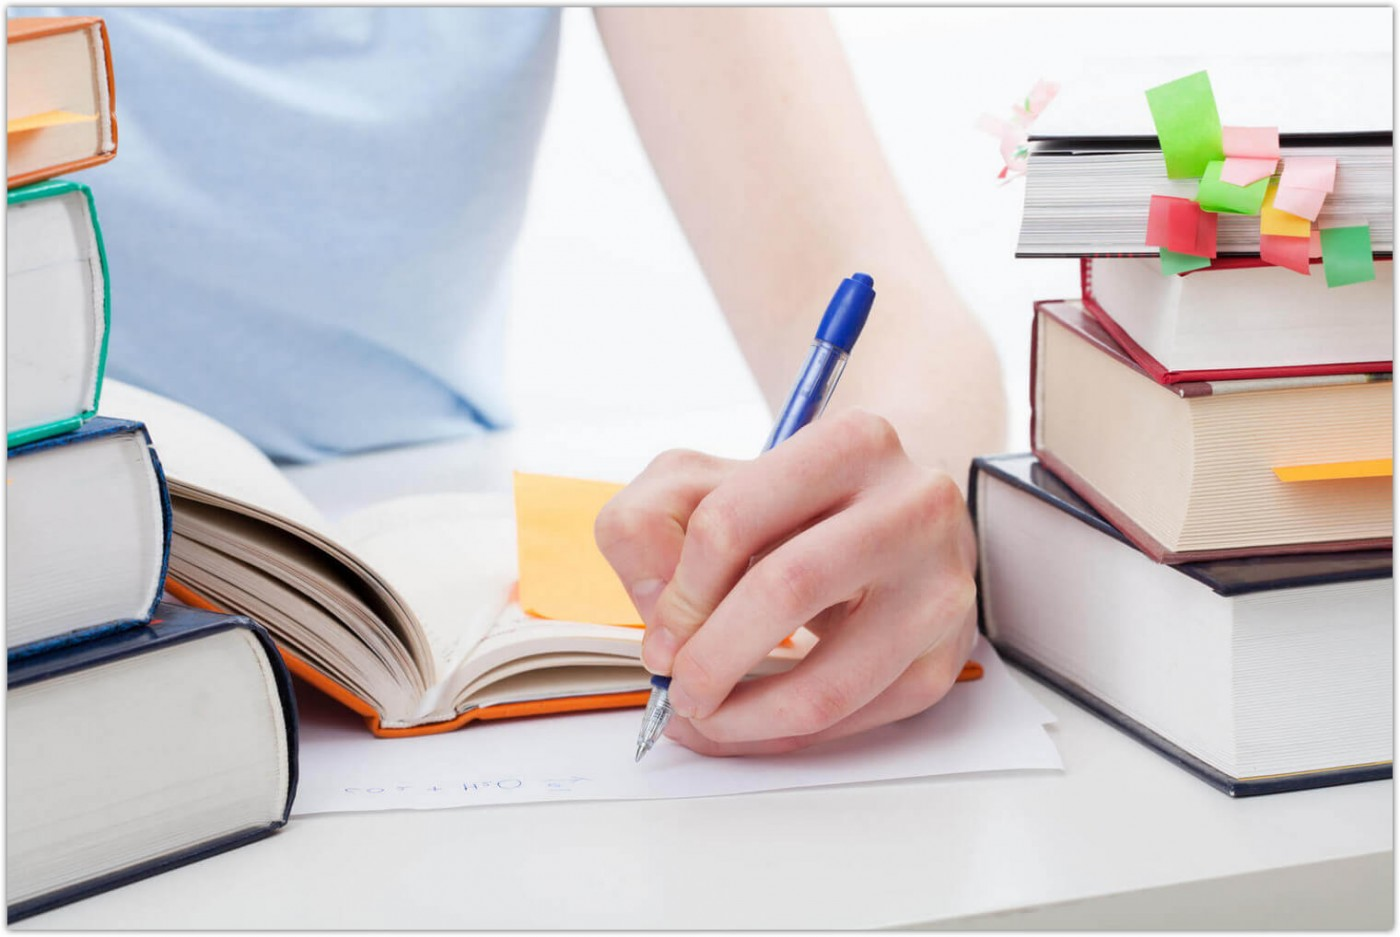 013 Research Paper Topics Help With Writing Fantastic Papers Assistance A 1400